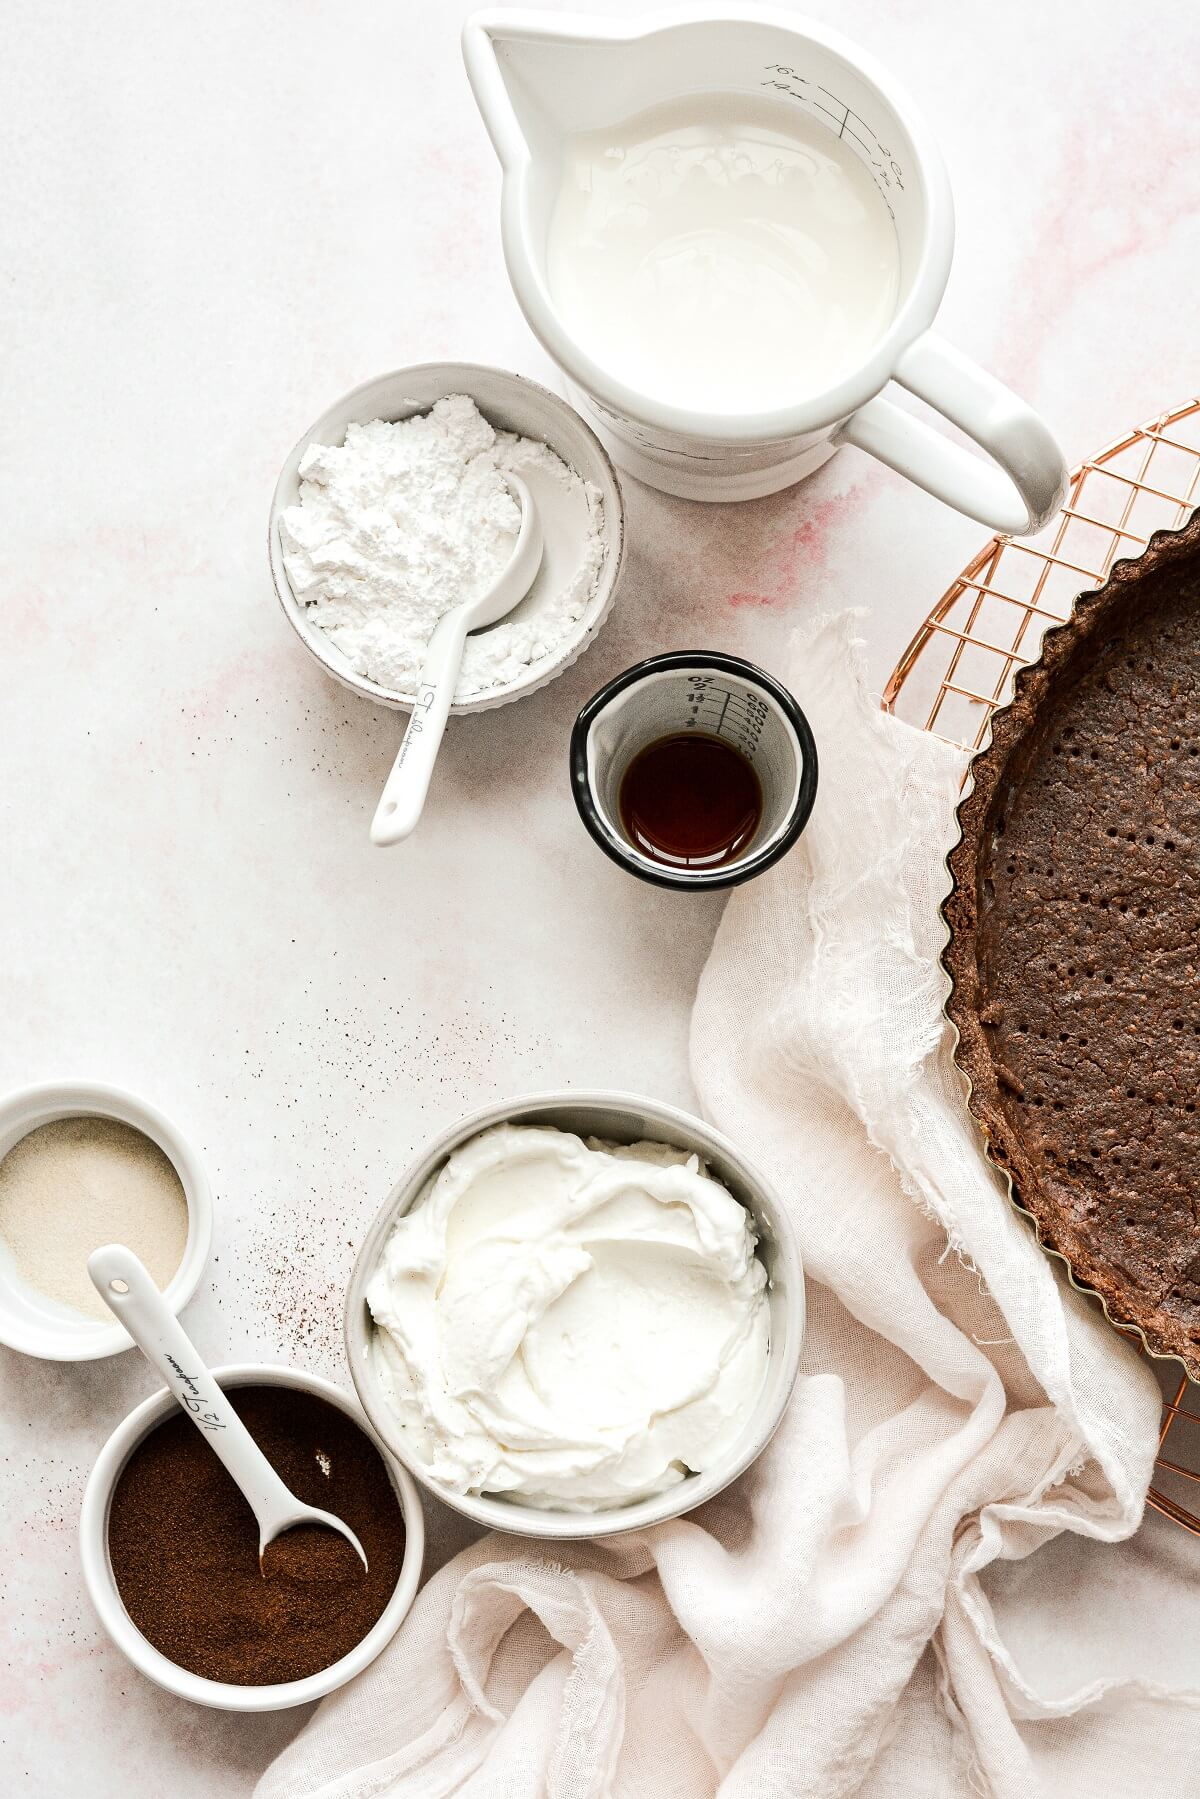 Ingredients for a coffee cream tart.